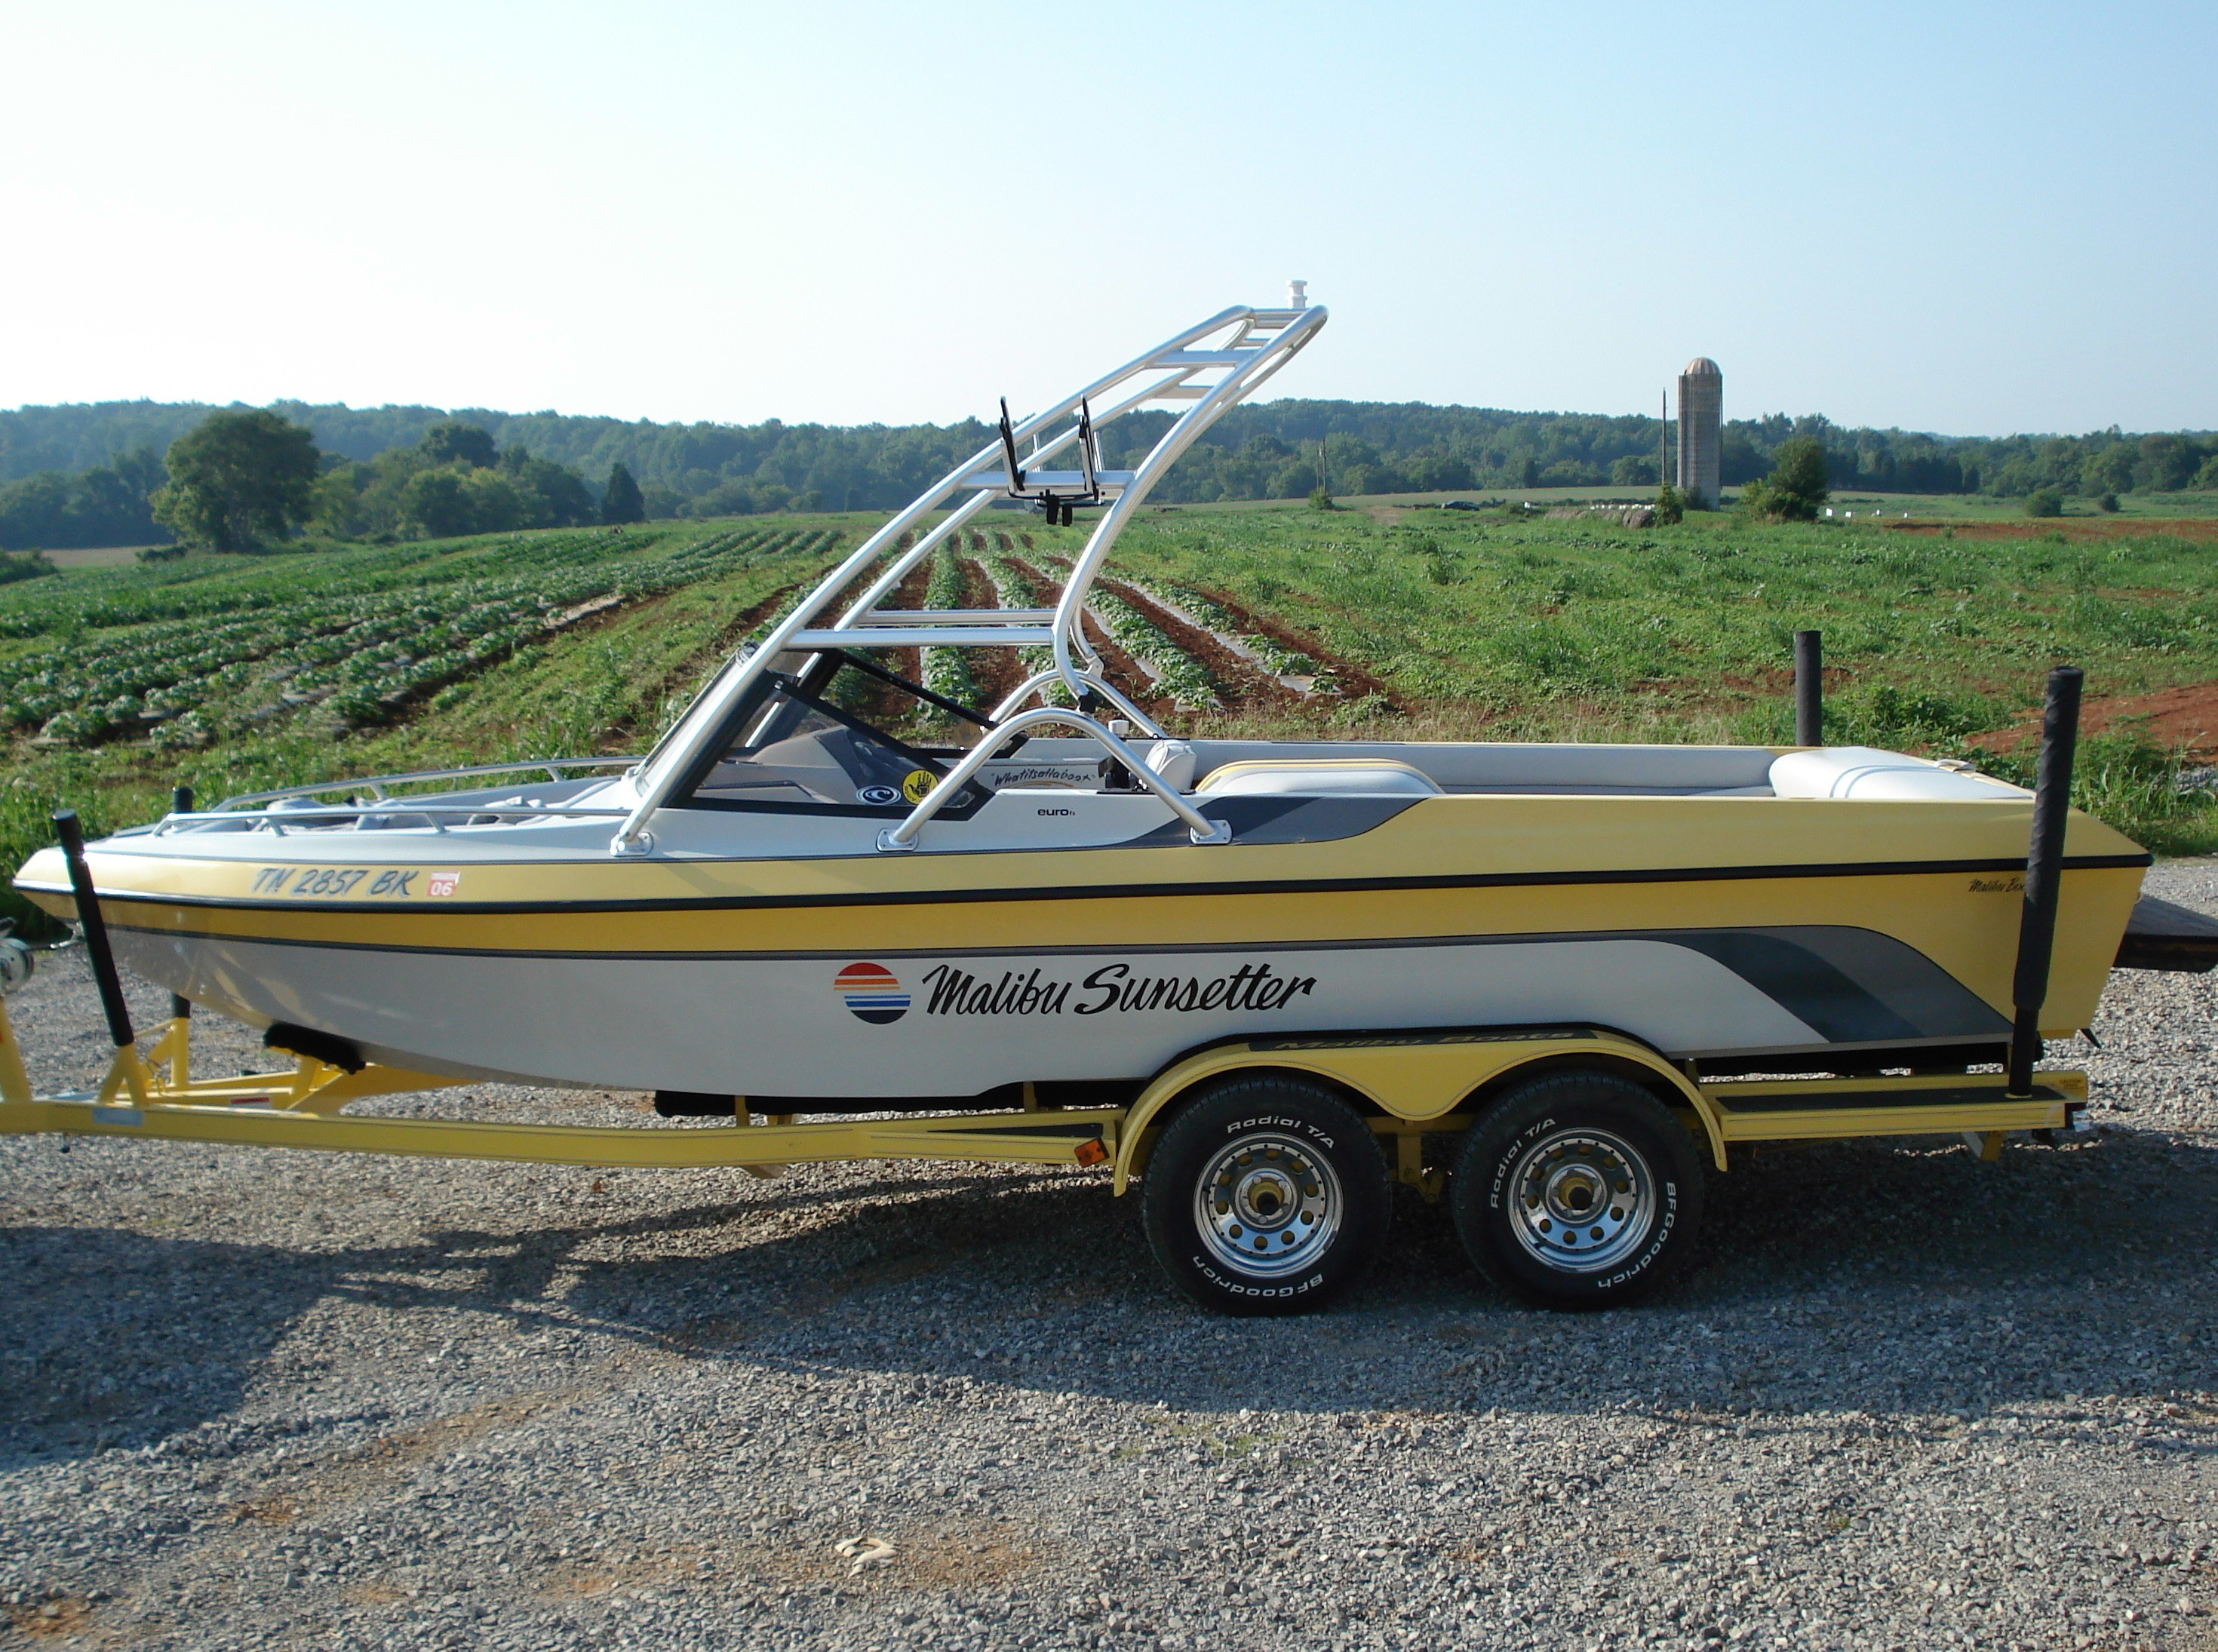 main image of 90 - 94 malibu sunsetter open bow with wakeboard tower from new dimension towers